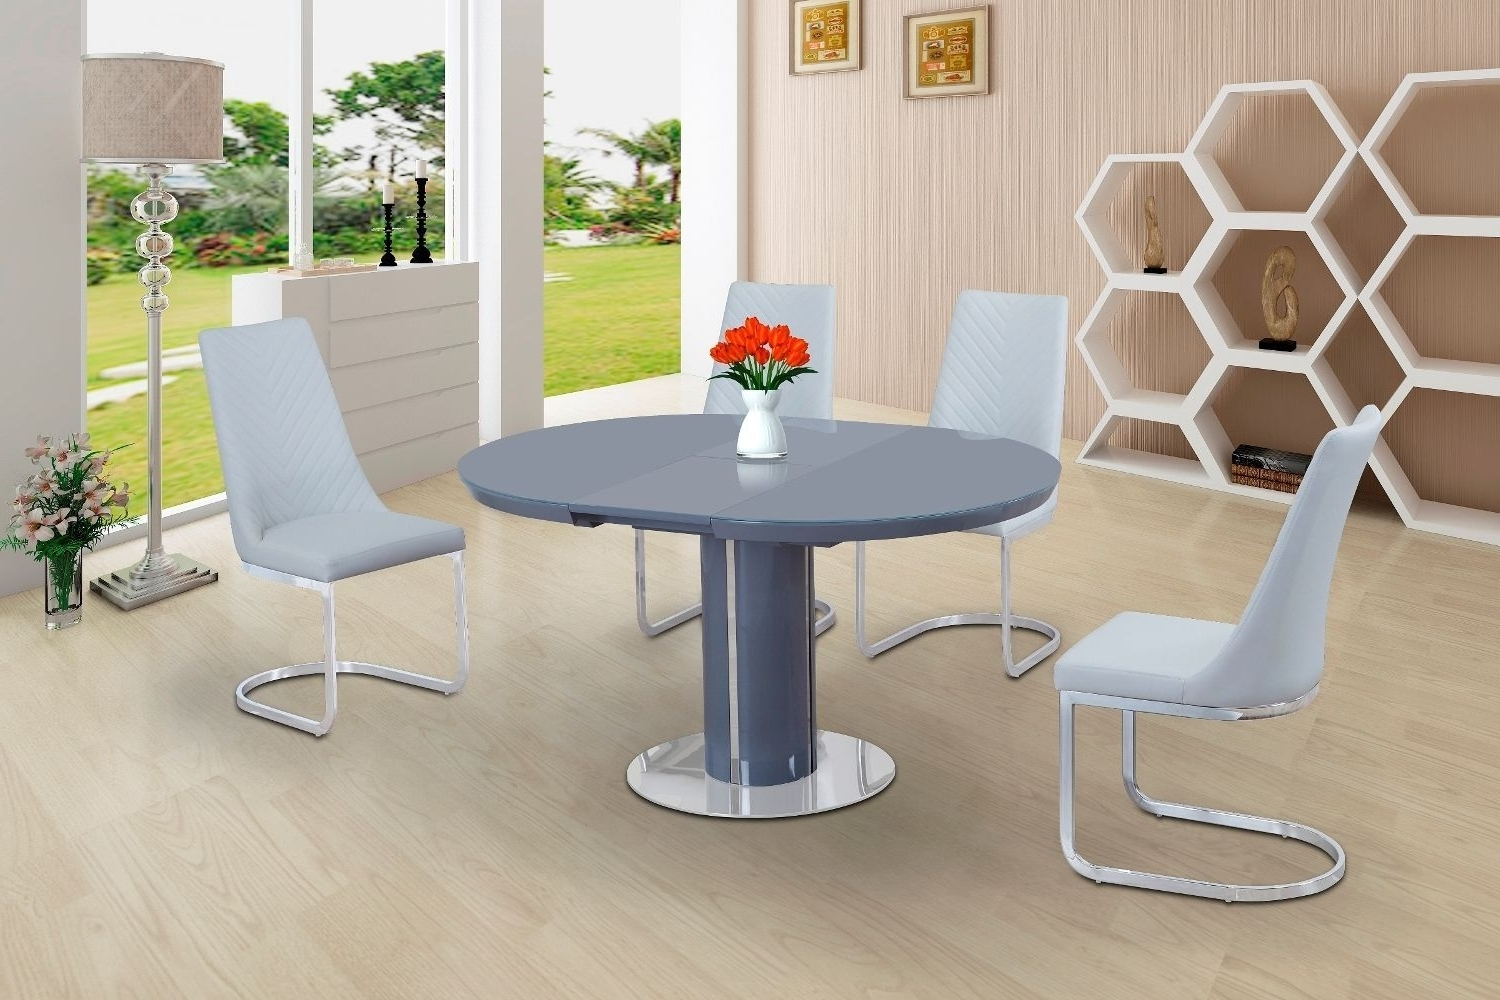 Most Recently Released Eclipse Round Oval Gloss & Glass Extending 110 To 145 Cm Dining With Glass Extendable Dining Tables And 6 Chairs (Gallery 5 of 25)